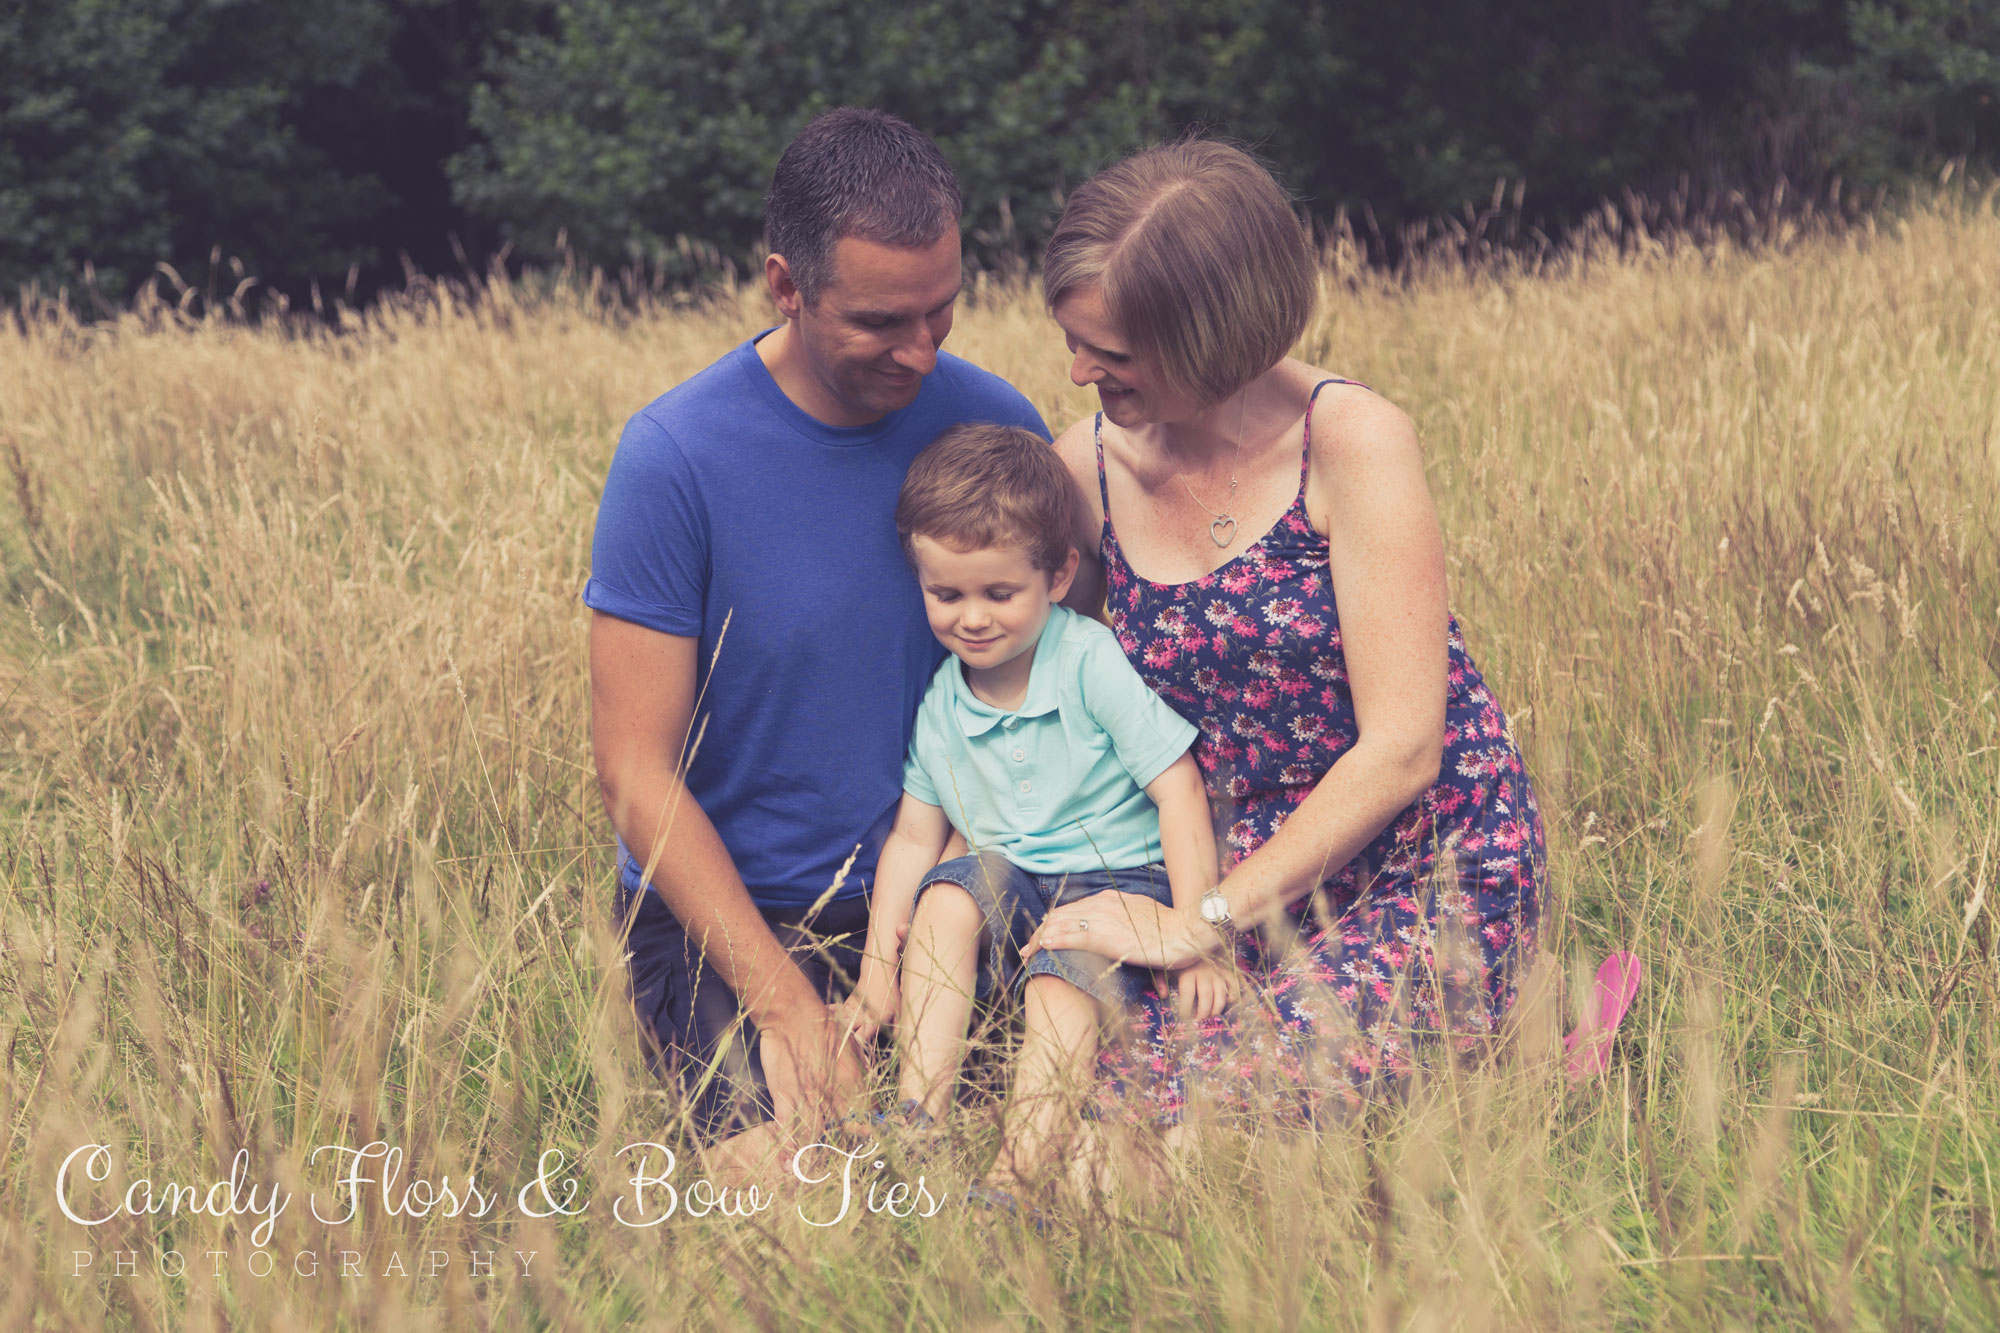 Oake-Family-Photoshoot-Tilgate-81©-Candy-Floss-and-Bow-Ties-Photography